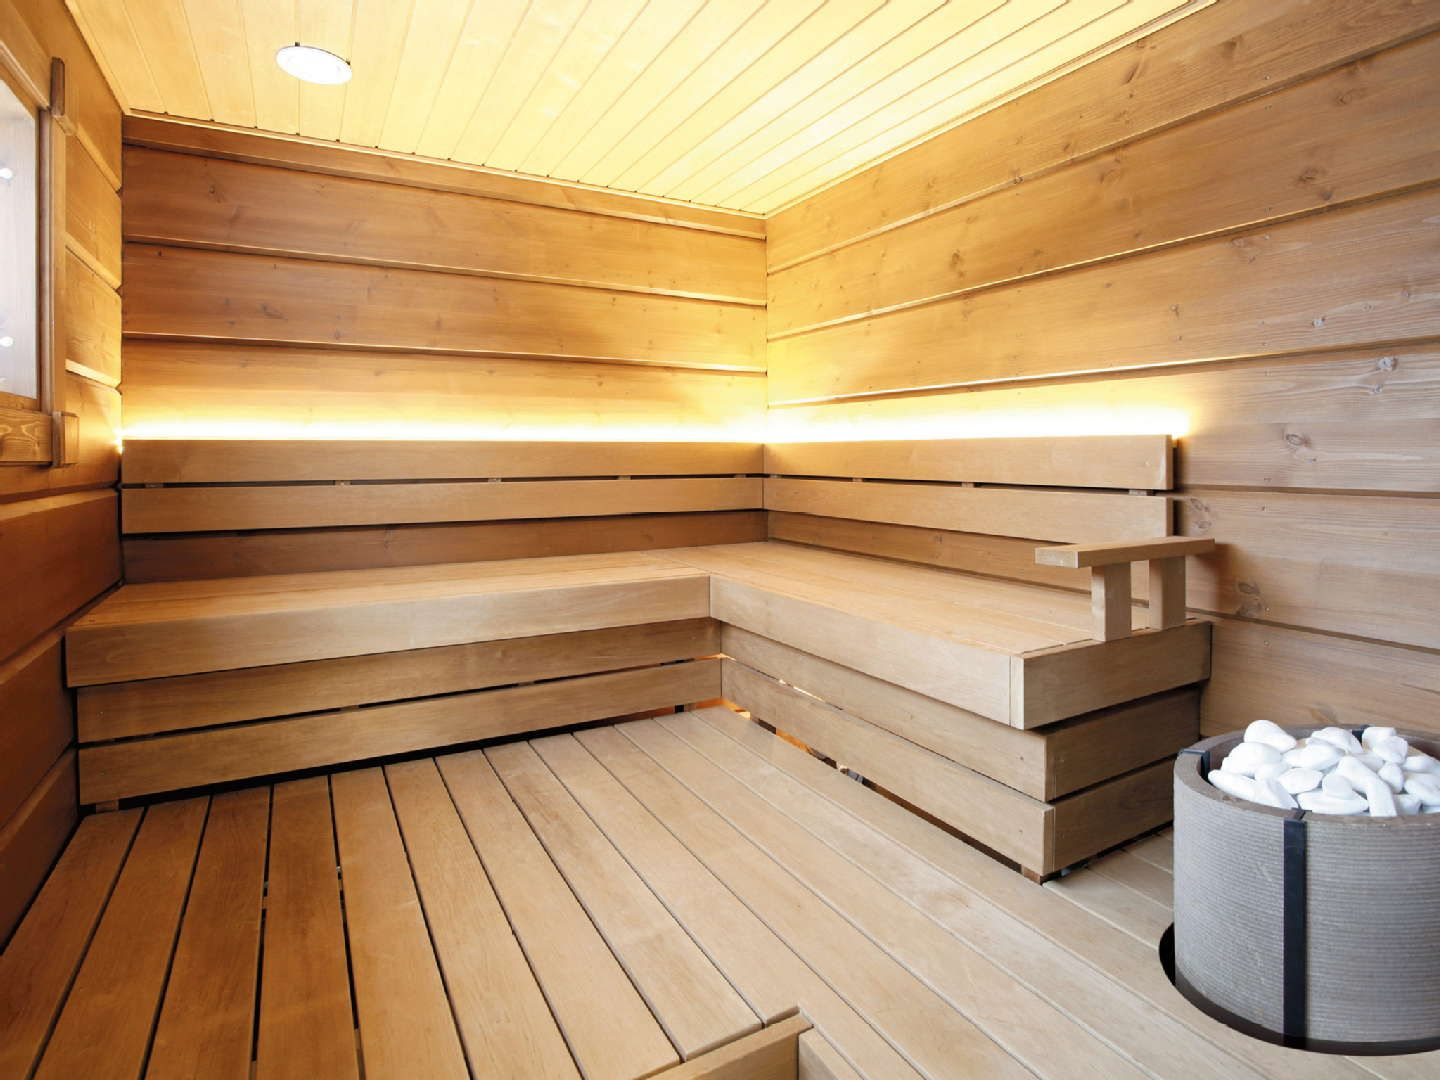 Find This Pin And More On Bathroom And Sauna Lighting